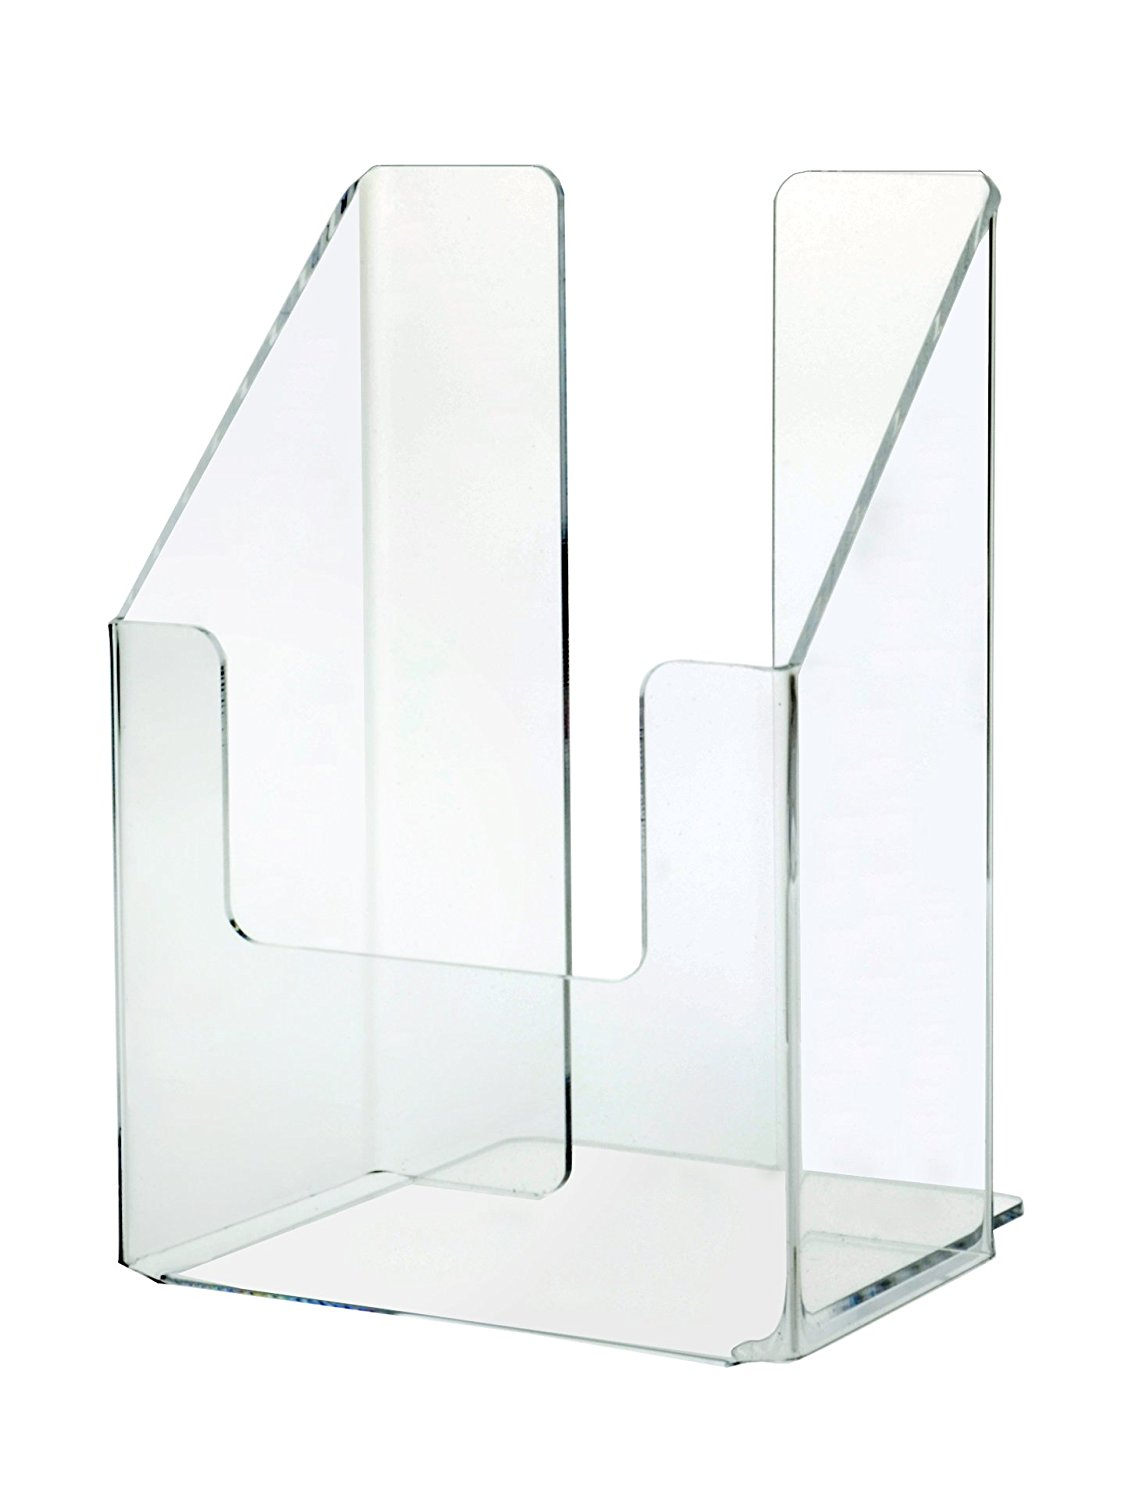 Marketing Holders Clear Acrylic Single Pocket Brochure Holder for 4 Inch Wide Literature, Tri-fold Brochures, and Pamphlets, Wall Mount or Countertop (Lot of 24)